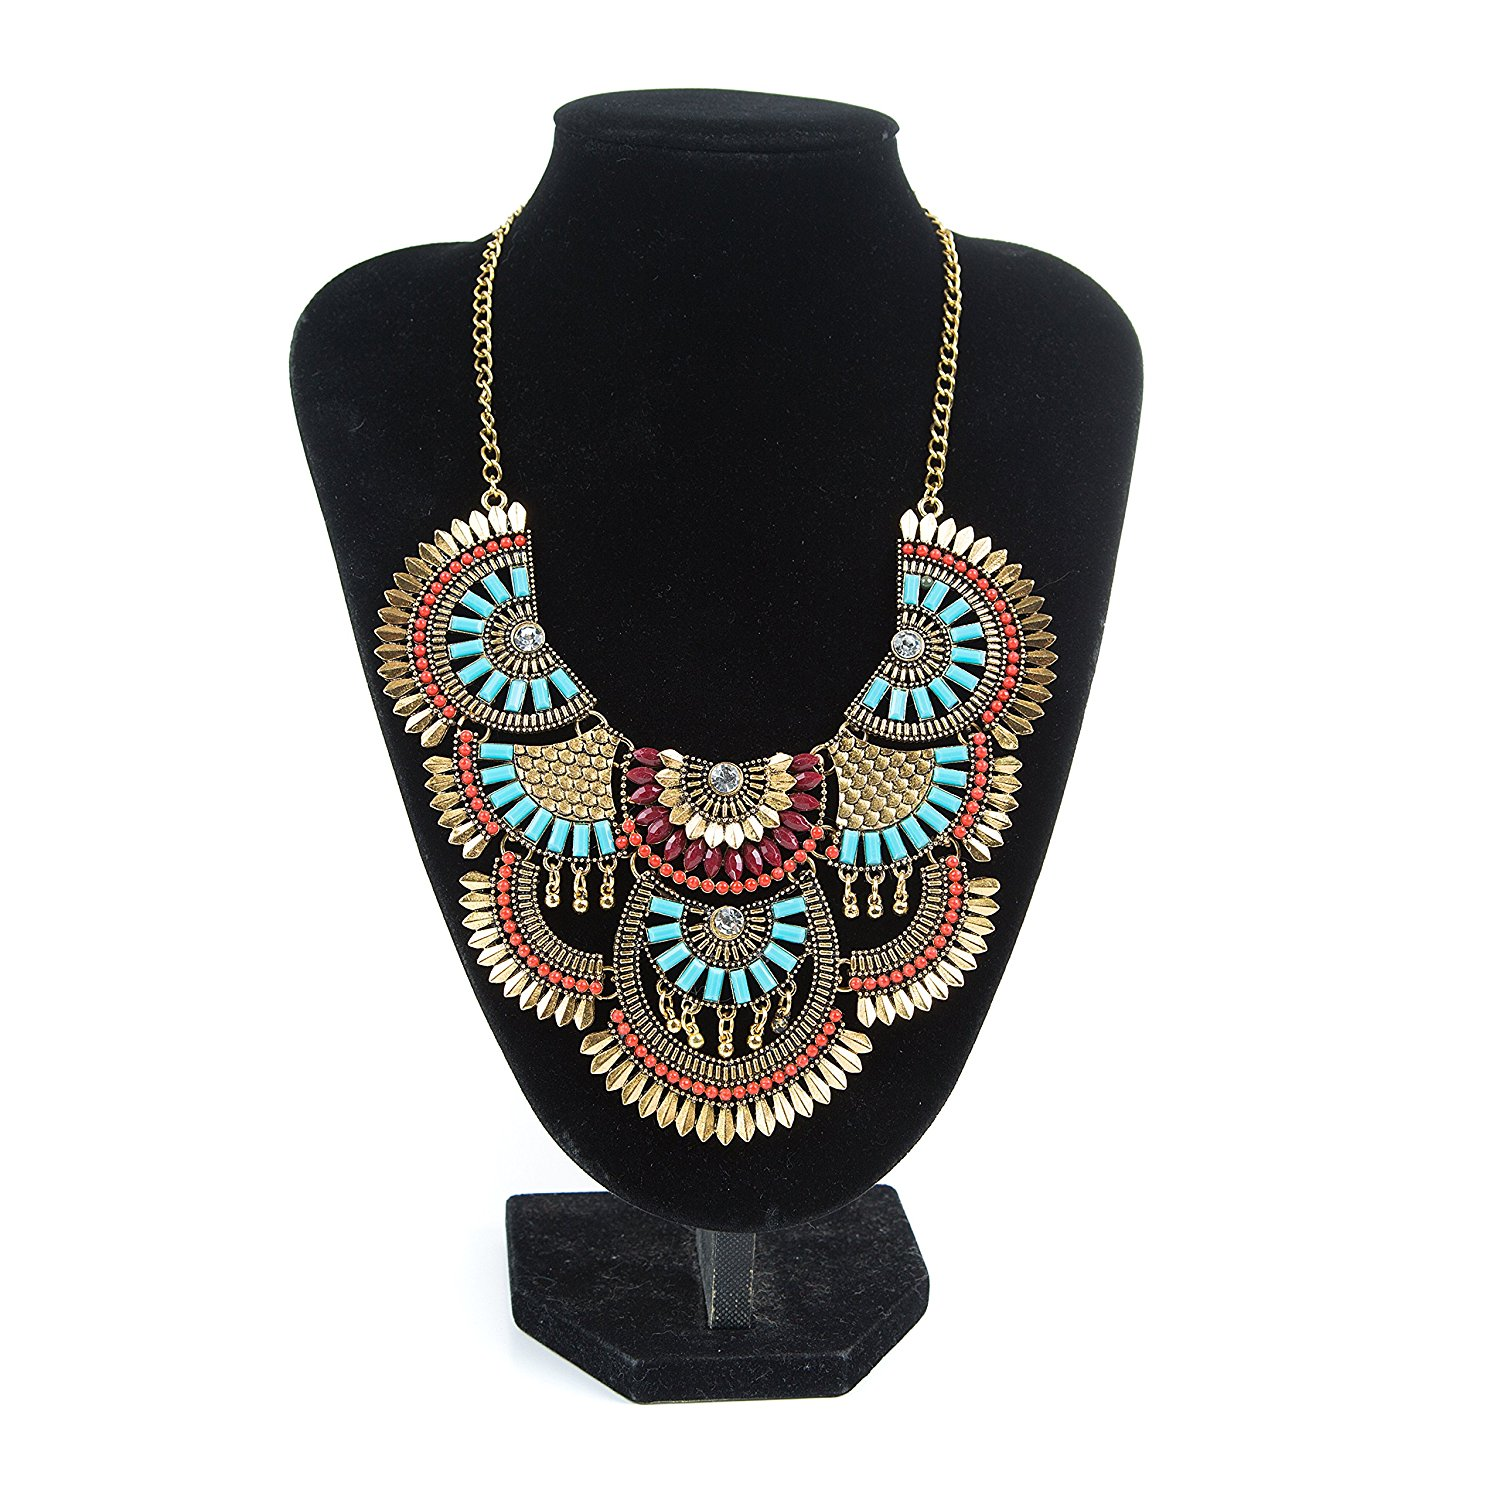 Miraculous Garden Womens Vintage Alloy Silver/Gold Boho Bohemian Necklace Ethnic Tribal Boho Necklace Turquoise Beads Crystal Necklace